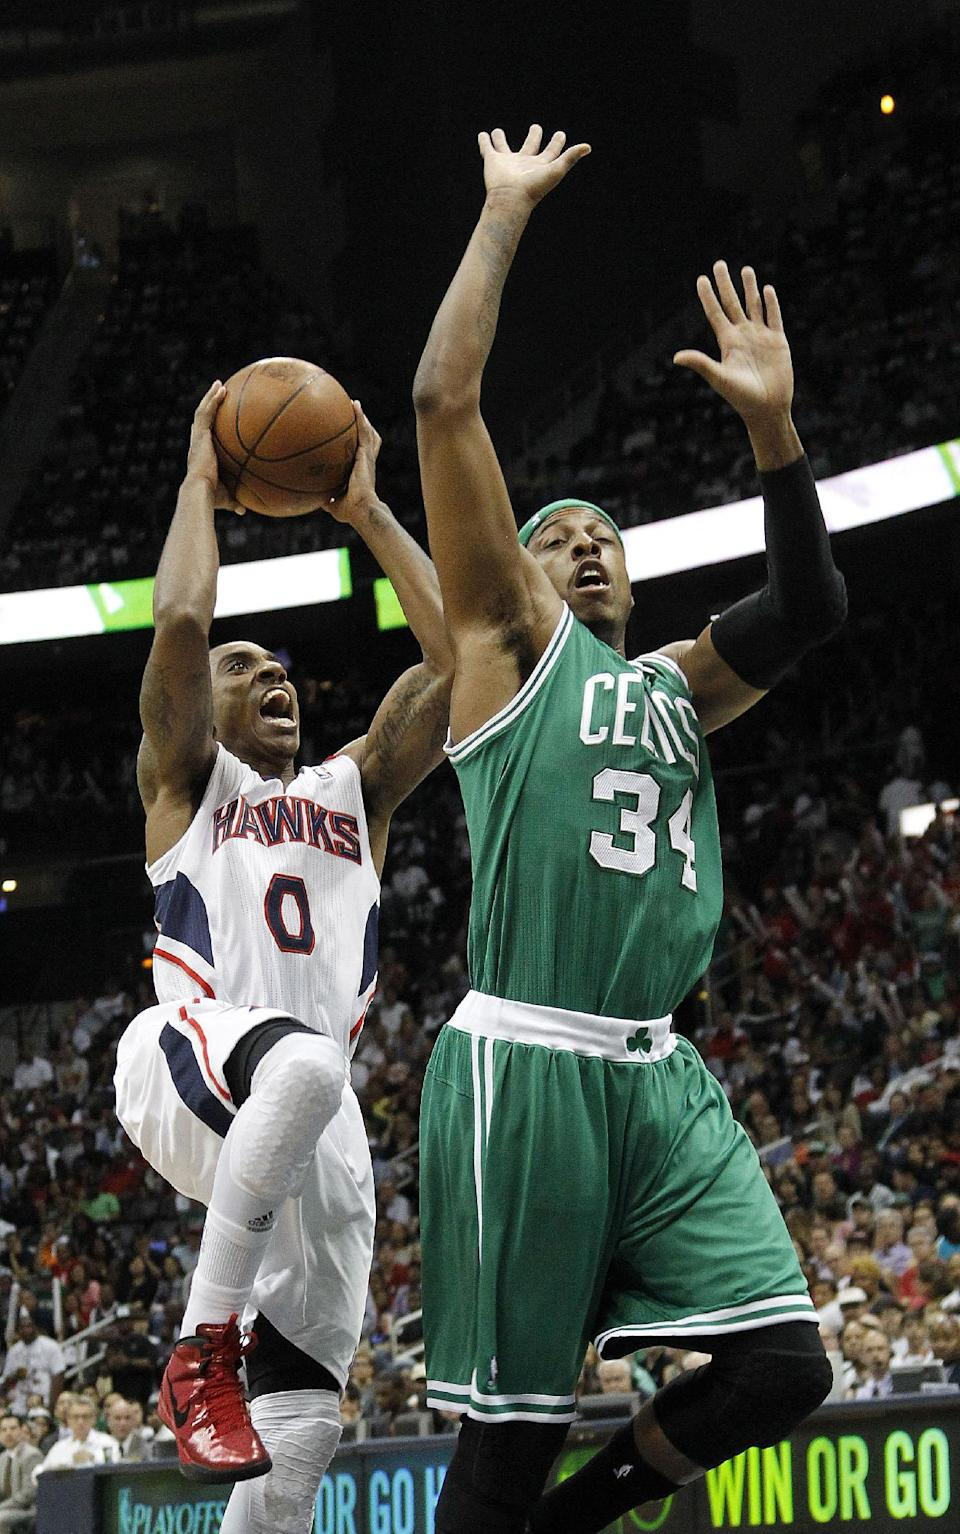 Atlanta Hawks guard Jeff Teague (0) drives to the basket as Boston Celtics forward Paul Pierce (34) defends during the first half of Game 5 of an NBA first-round playoff series basketball game Tuesday, May 8, 2012, in Atlanta. (AP Photo/John Bazemore)